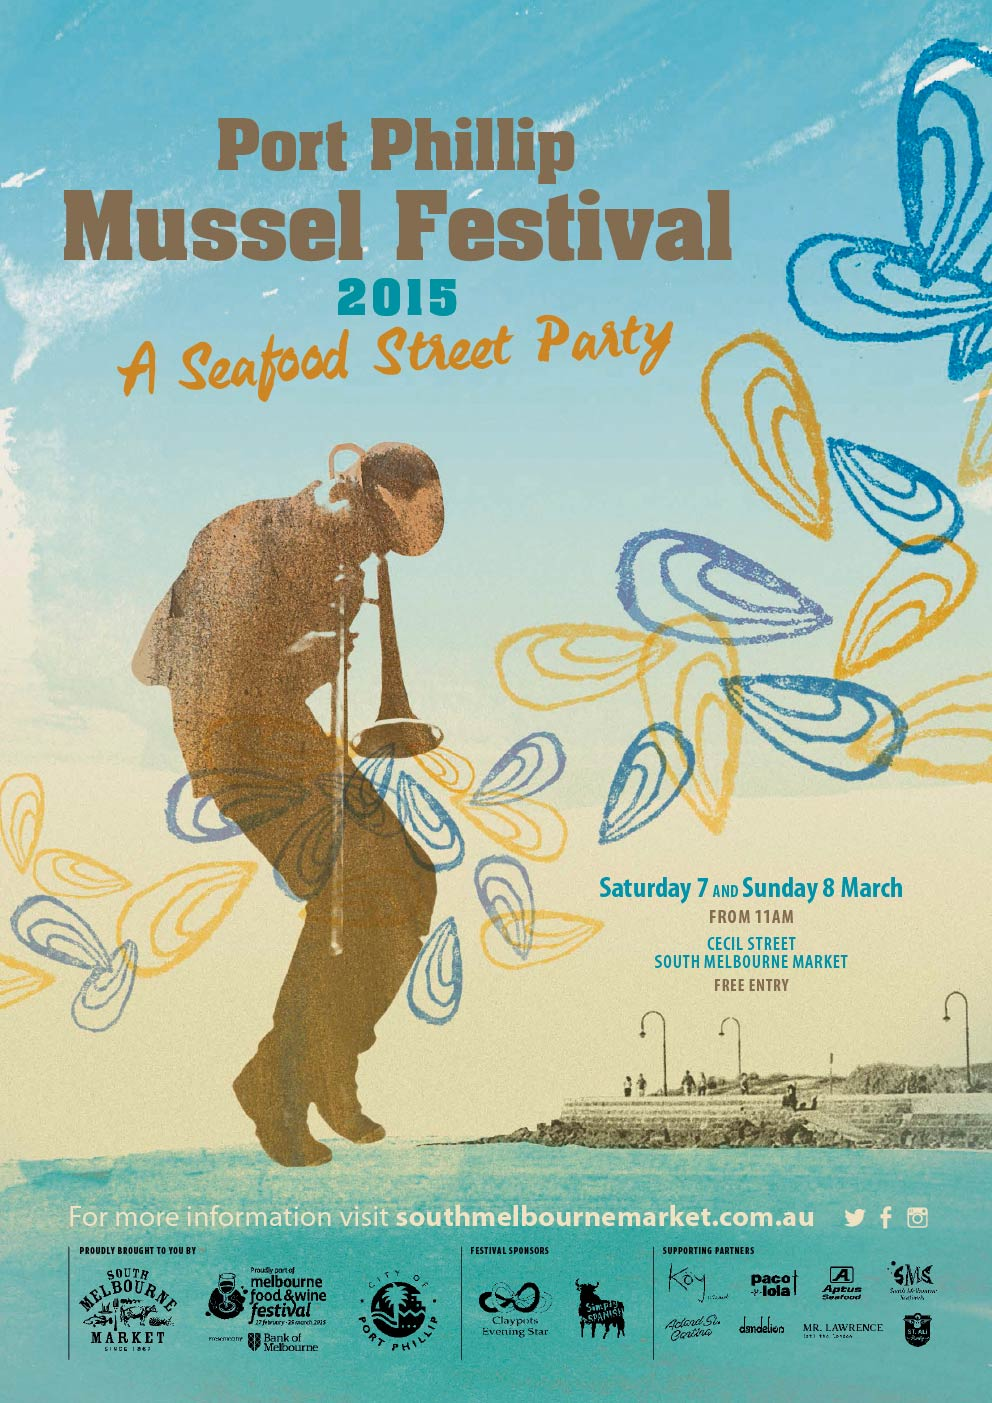 Port Philip Mussel Festival